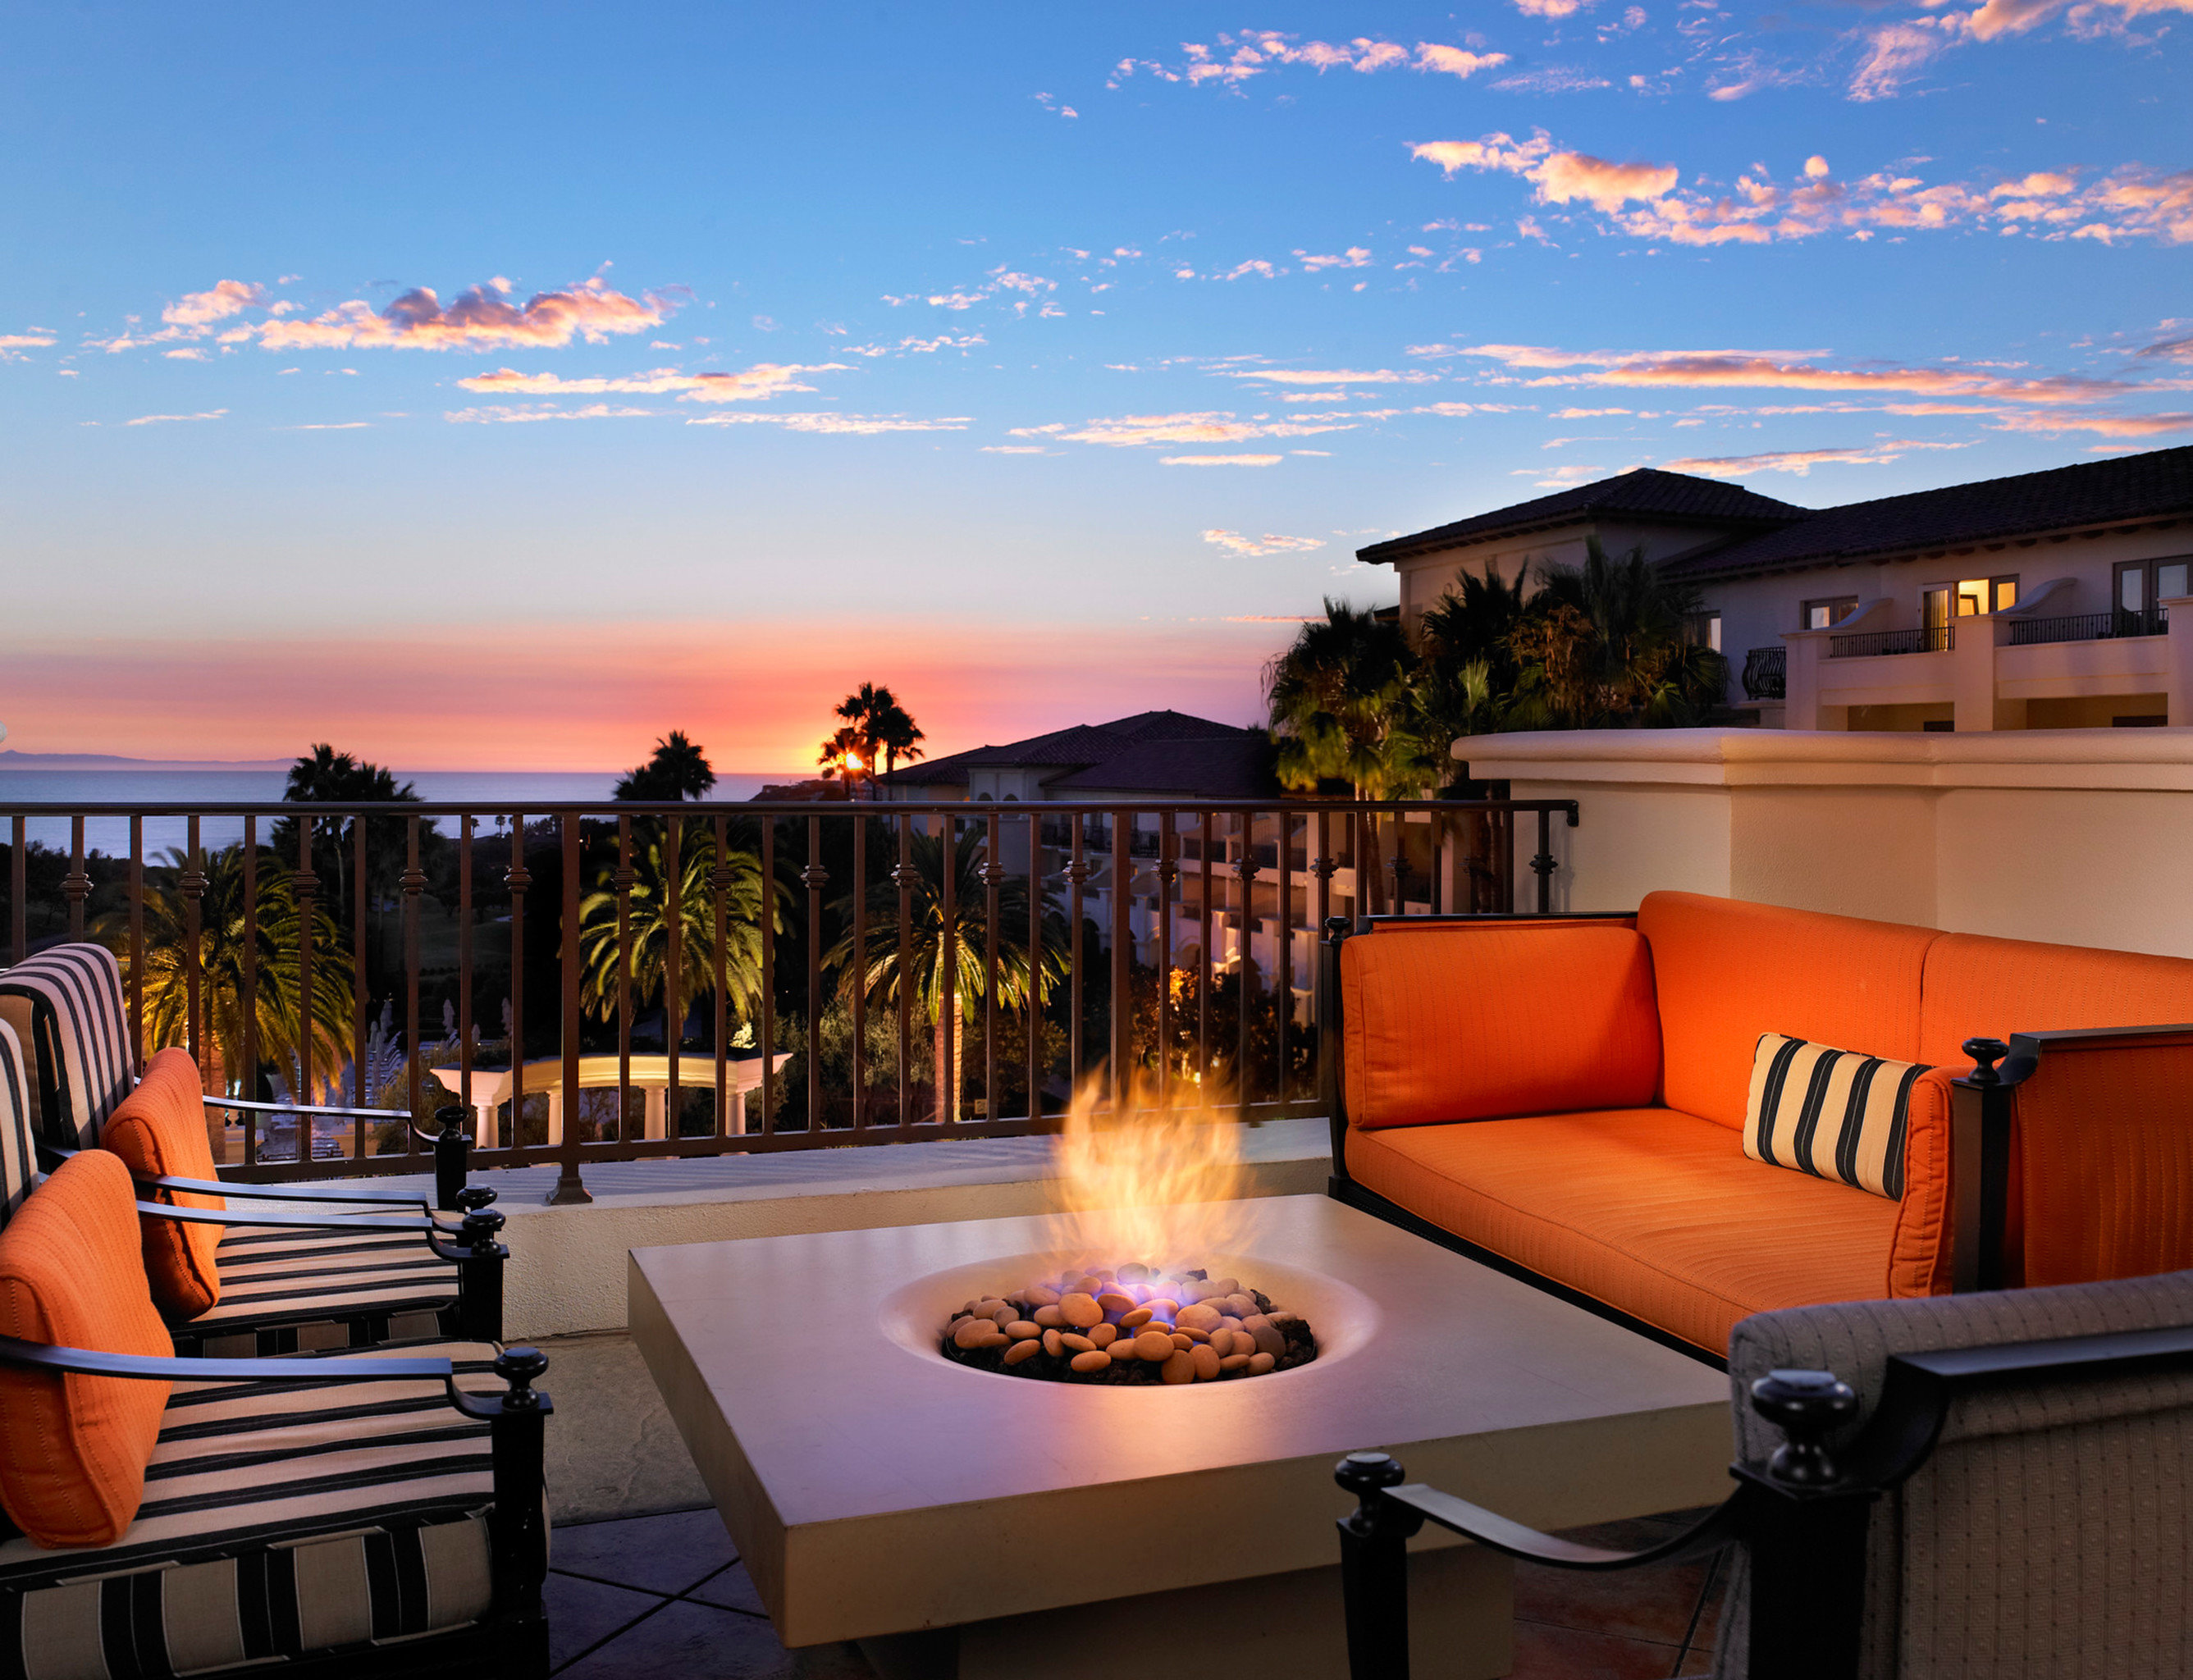 Hotels Living Lounge Luxury Sky Orange Outdoor Property Estate House Vacation Home Resort Sunset Real